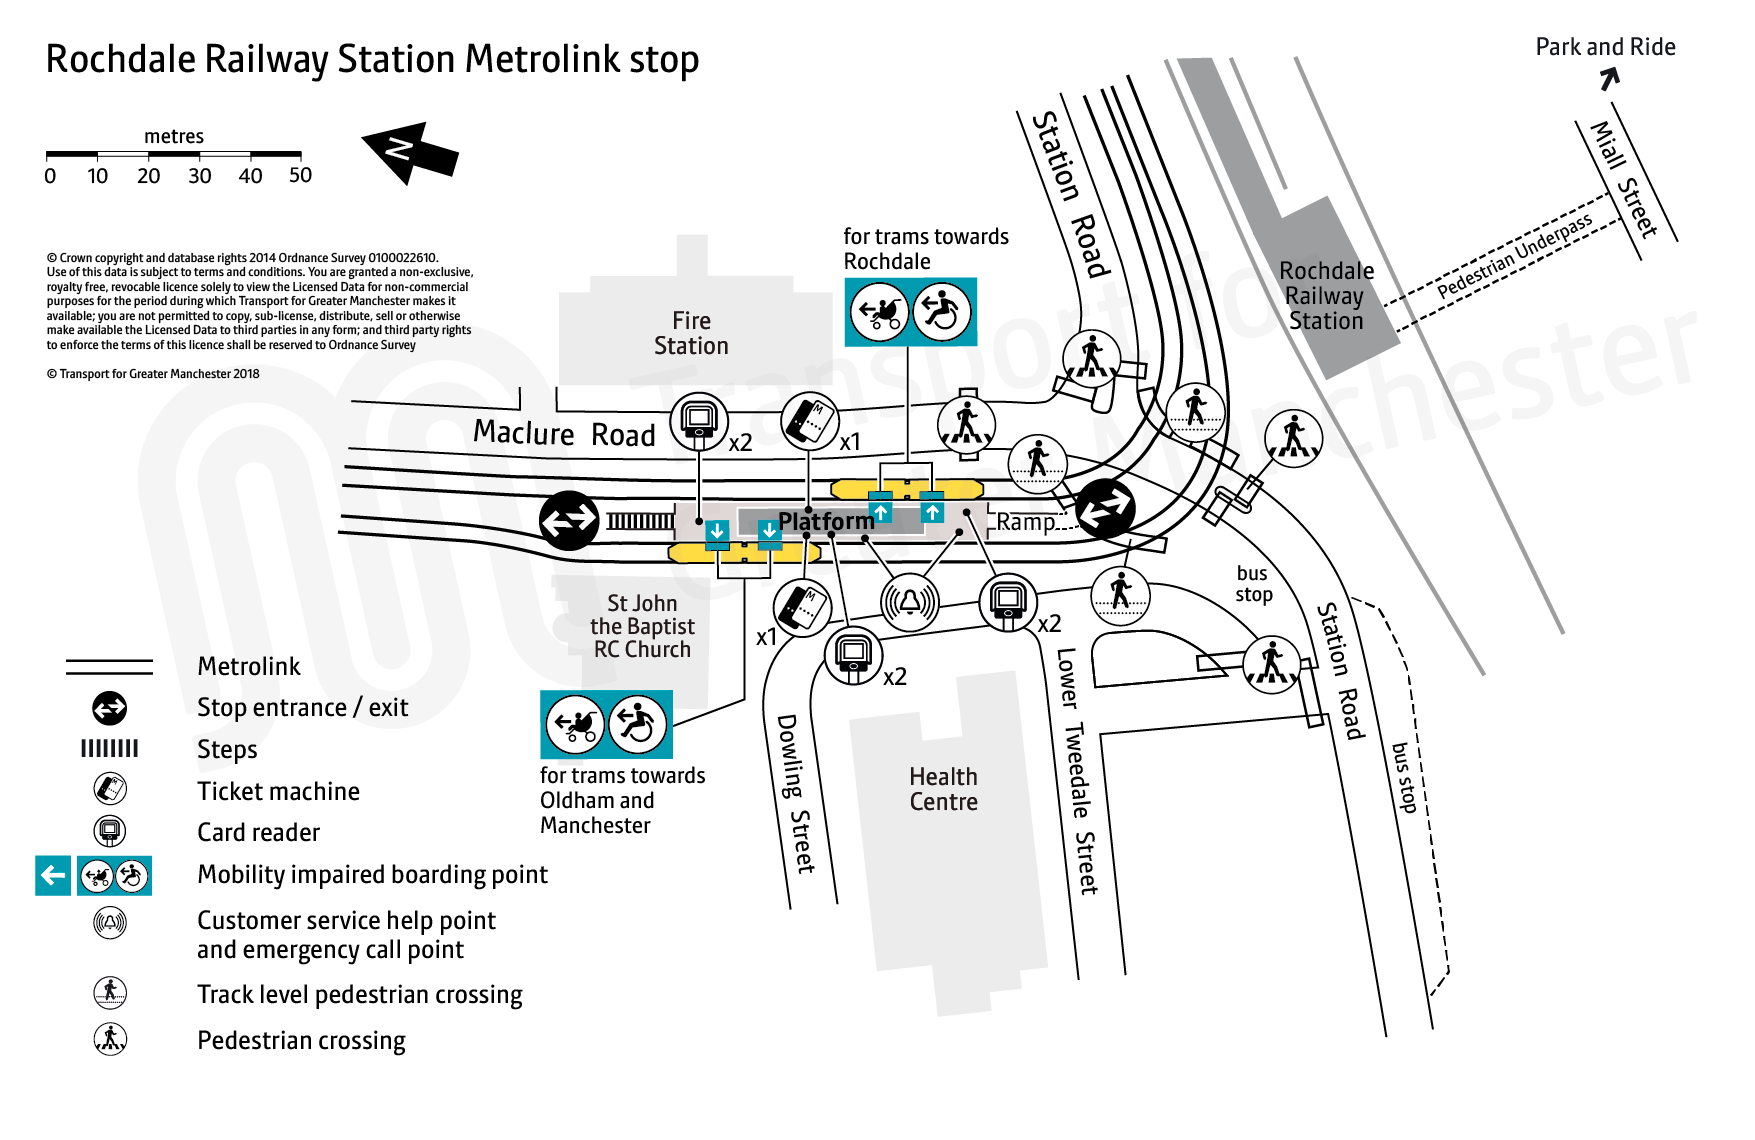 Stop map for Rochdale Railway Station tram stop